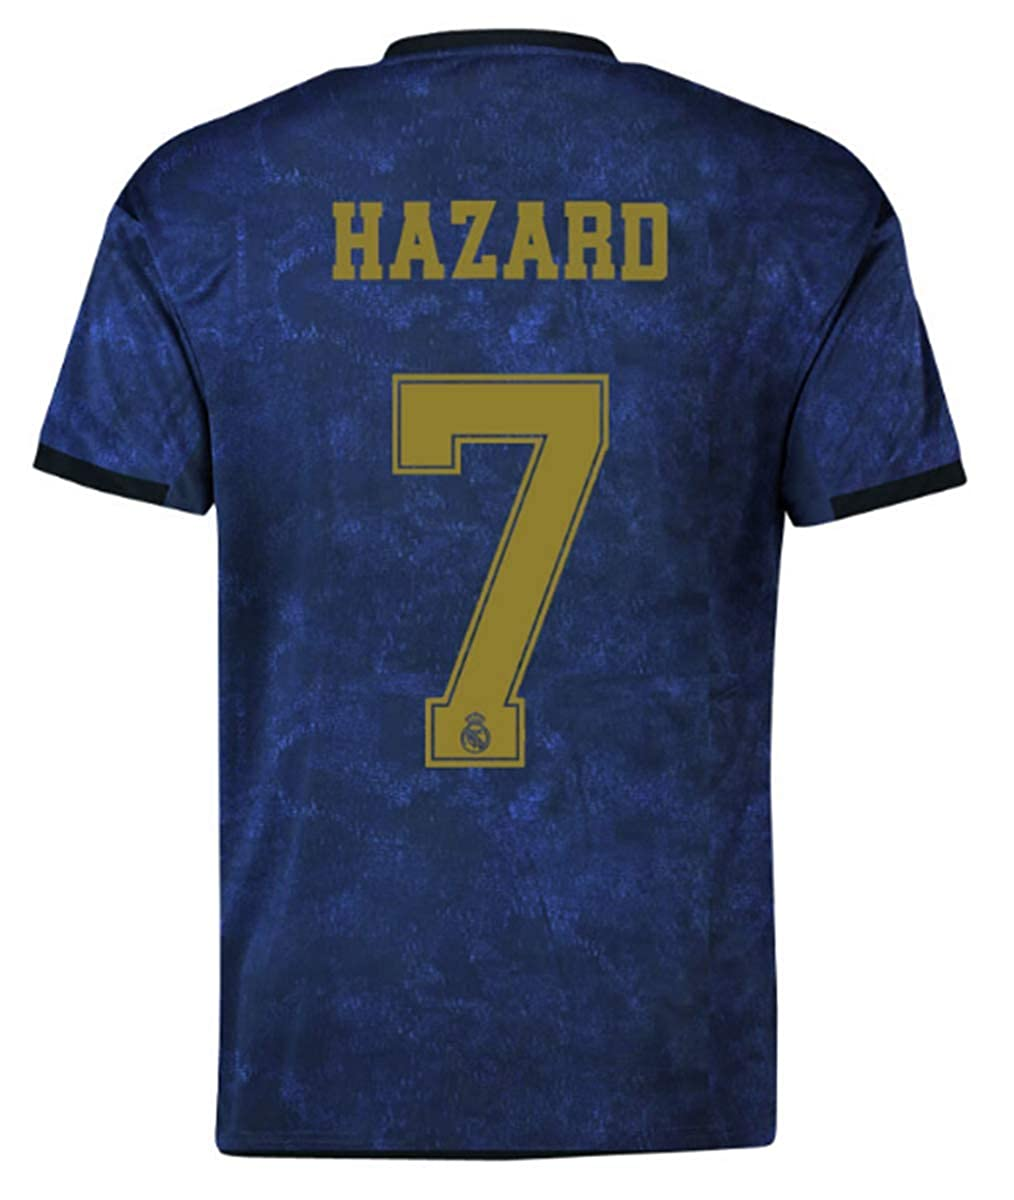 official photos 2438d ea1a4 Real Madrid Hazard # 7 Soccer Jersey 2019-2020 Away Mens Jersey Blue